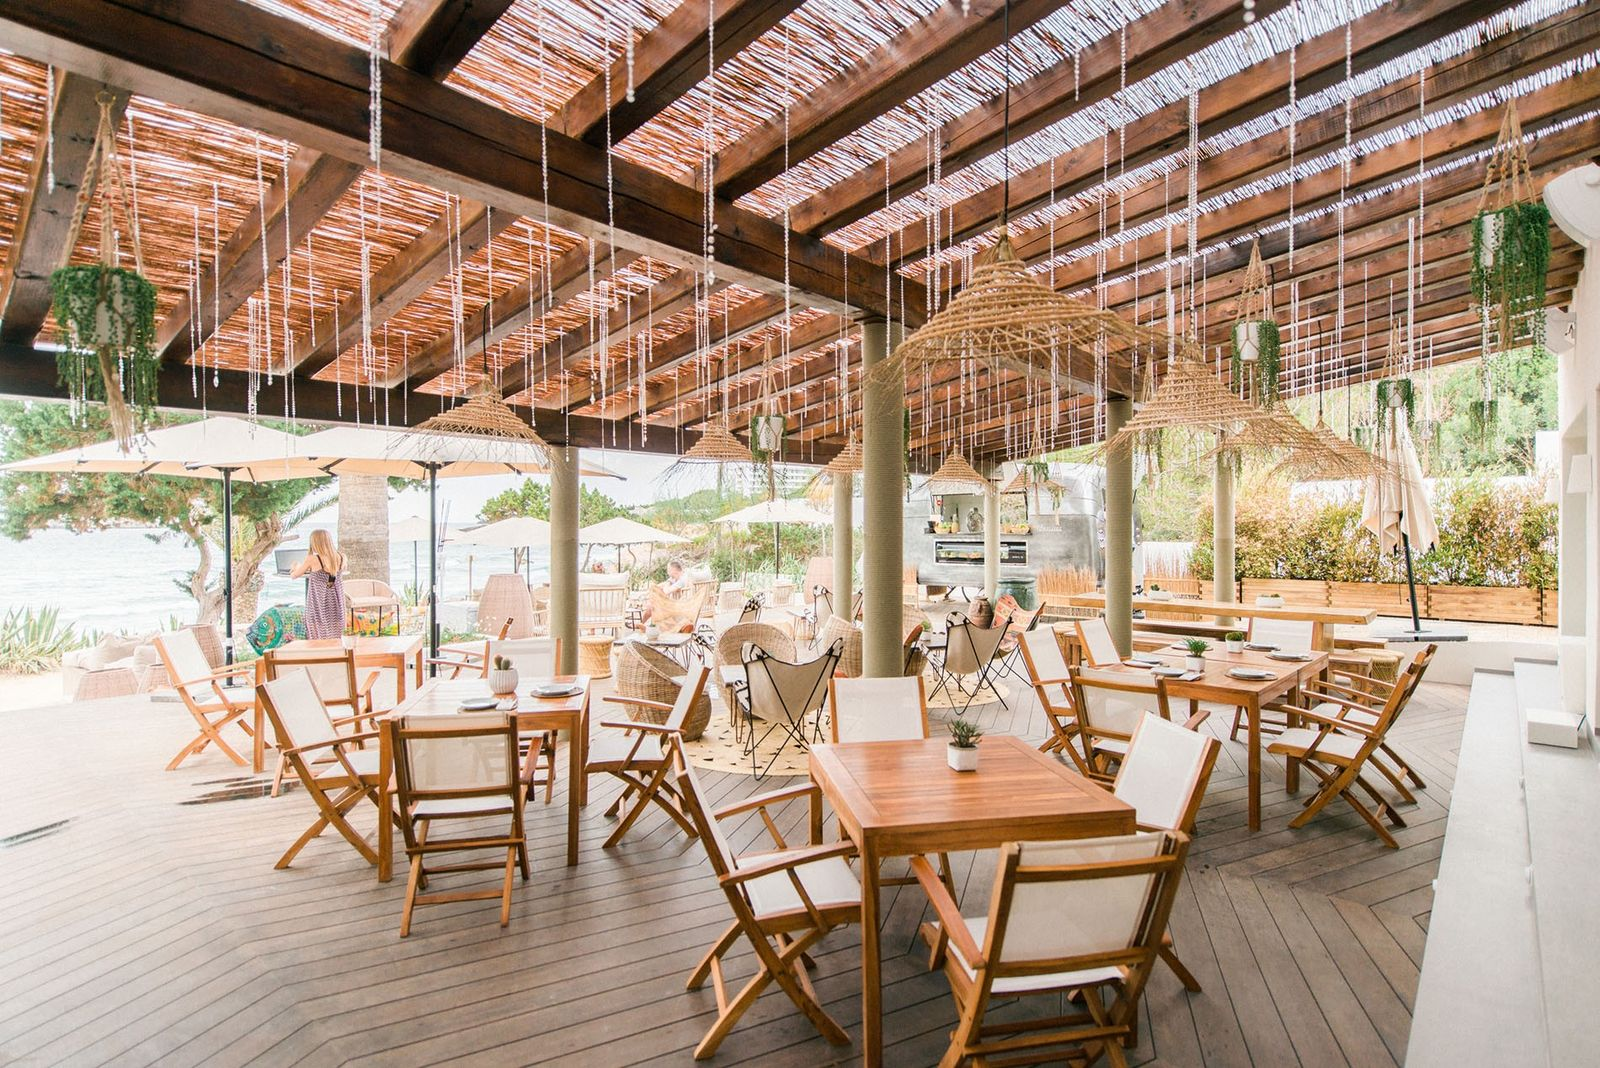 Fairly new to the scene, the Aiyanna beach restaurant captures the essence of Ibiza.